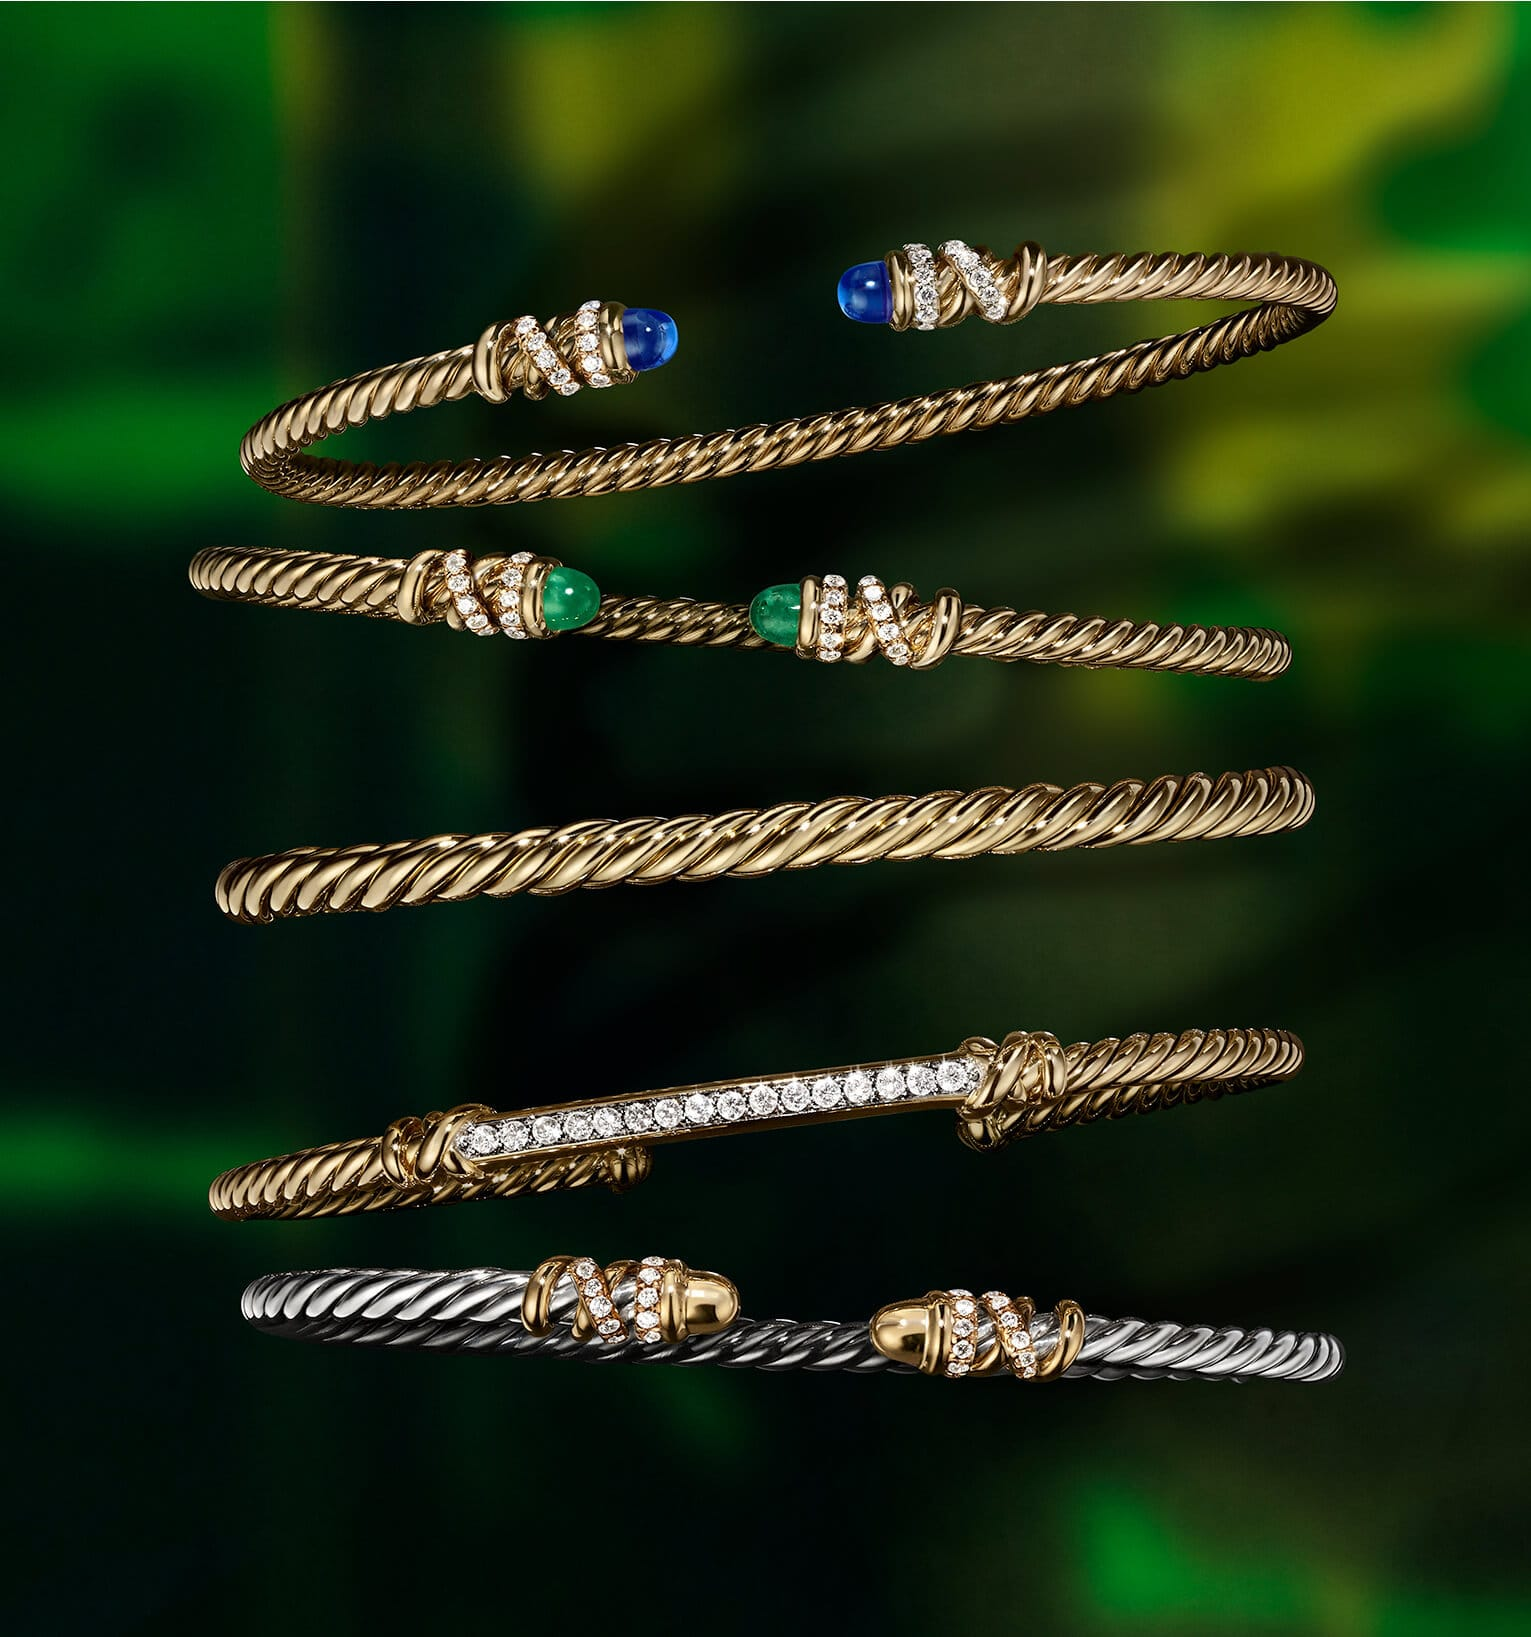 A color photograph shows an overhead shot of a horizontal stack of five David Yurman bracelets from the Helena and Cablespira collections placed atop a dark green surface with illuminated sections. The women's jewelry is crafted from 18K yellow gold or mixed metals with pavé white diamonds and emerald, gold or tanzanite end caps.